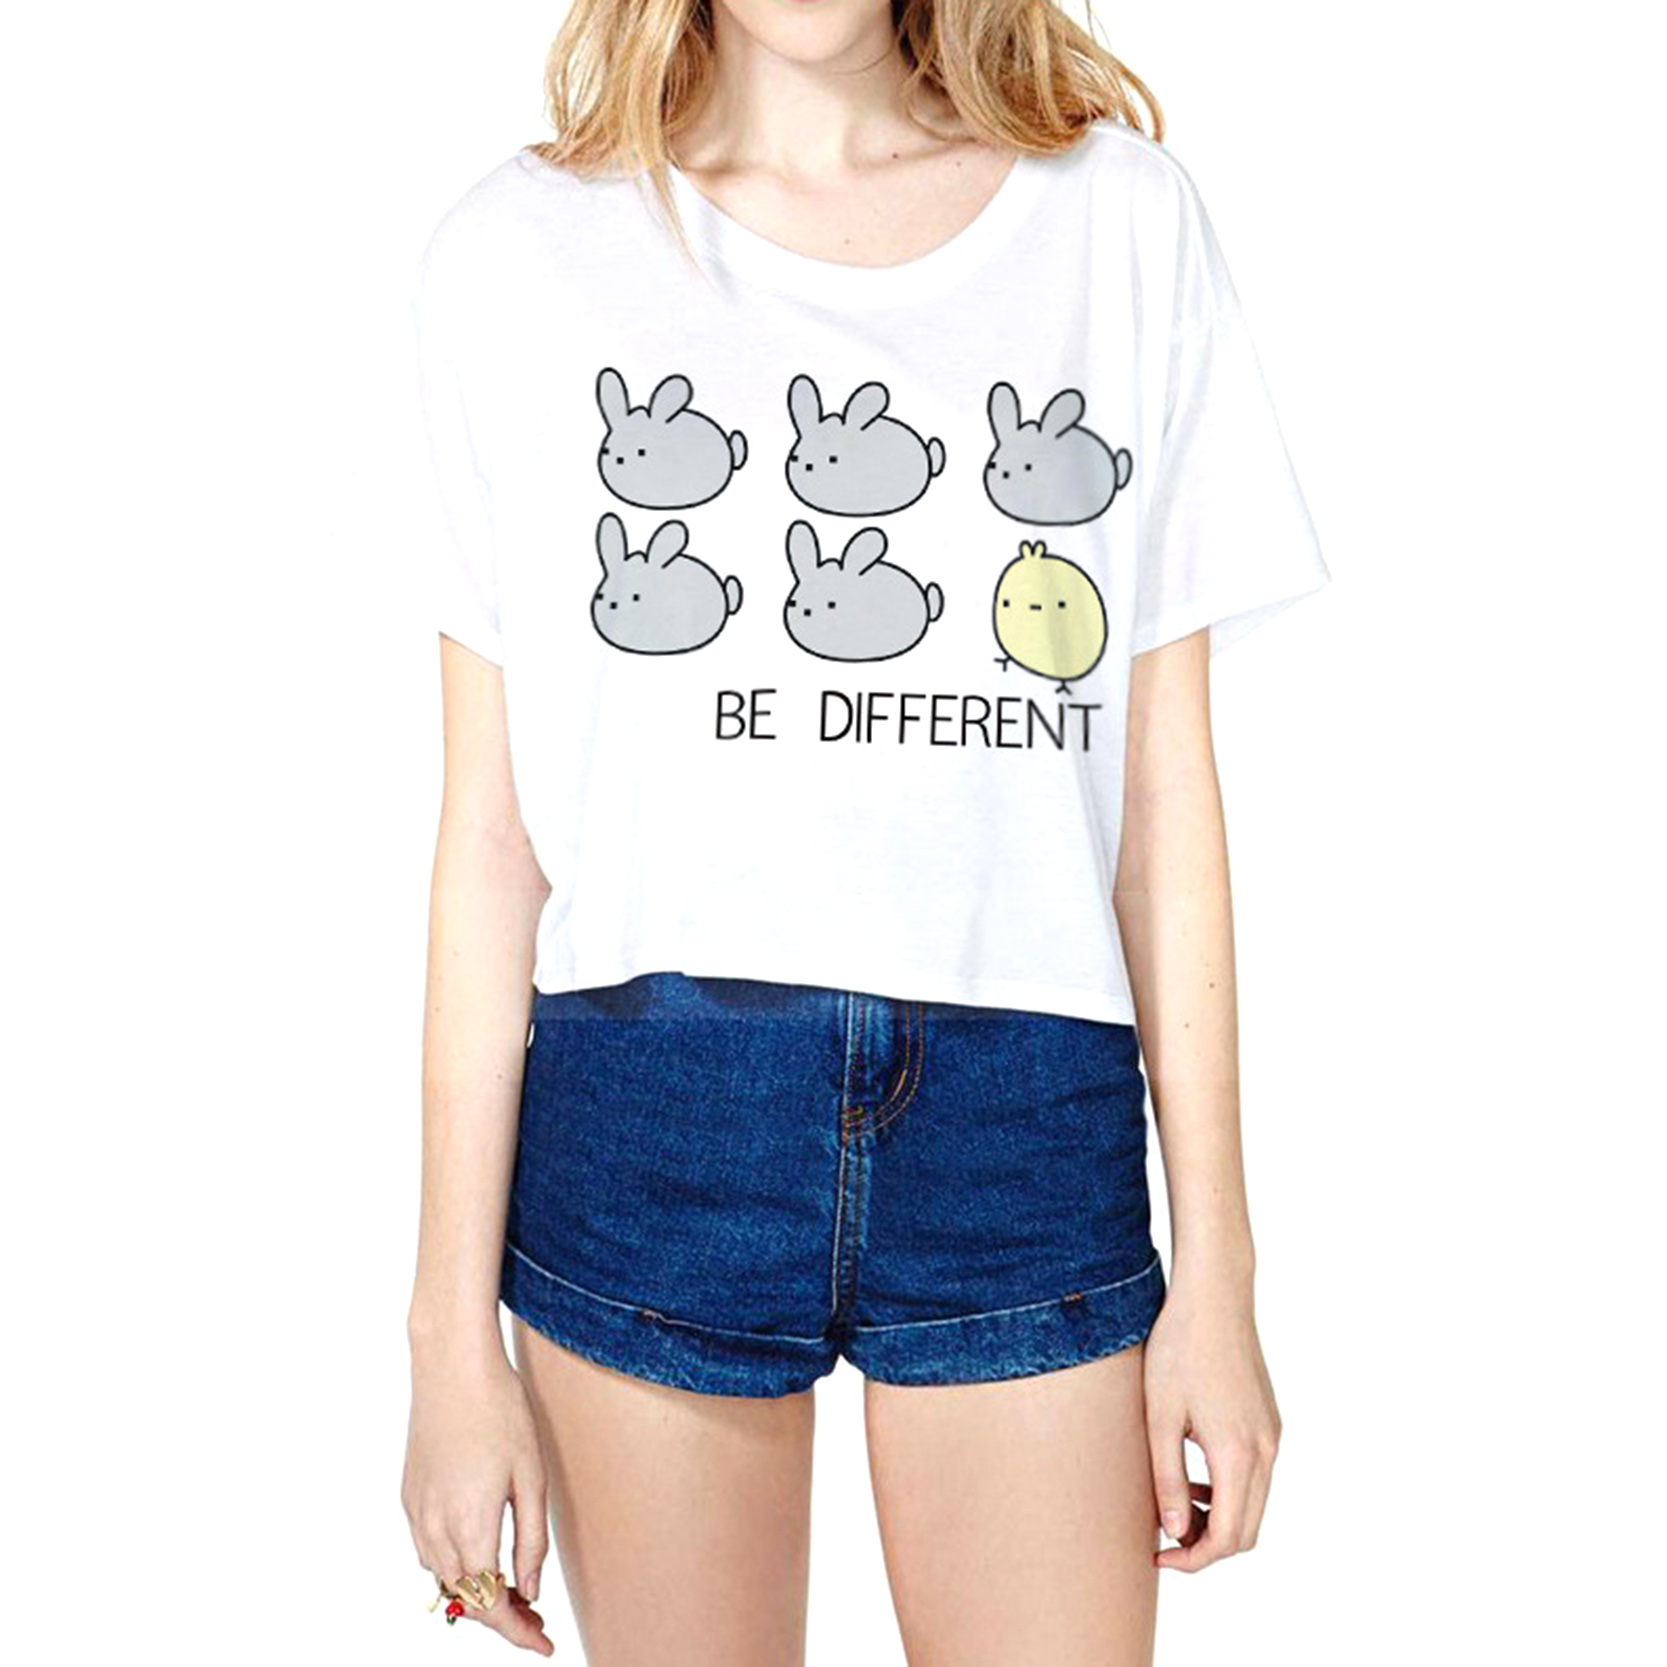 2016 New Fasion Summer Style Be Different Letter Loose Cotton Short Sleeves White Tops Free Casual T-Shirt For Women(China (Mainland))